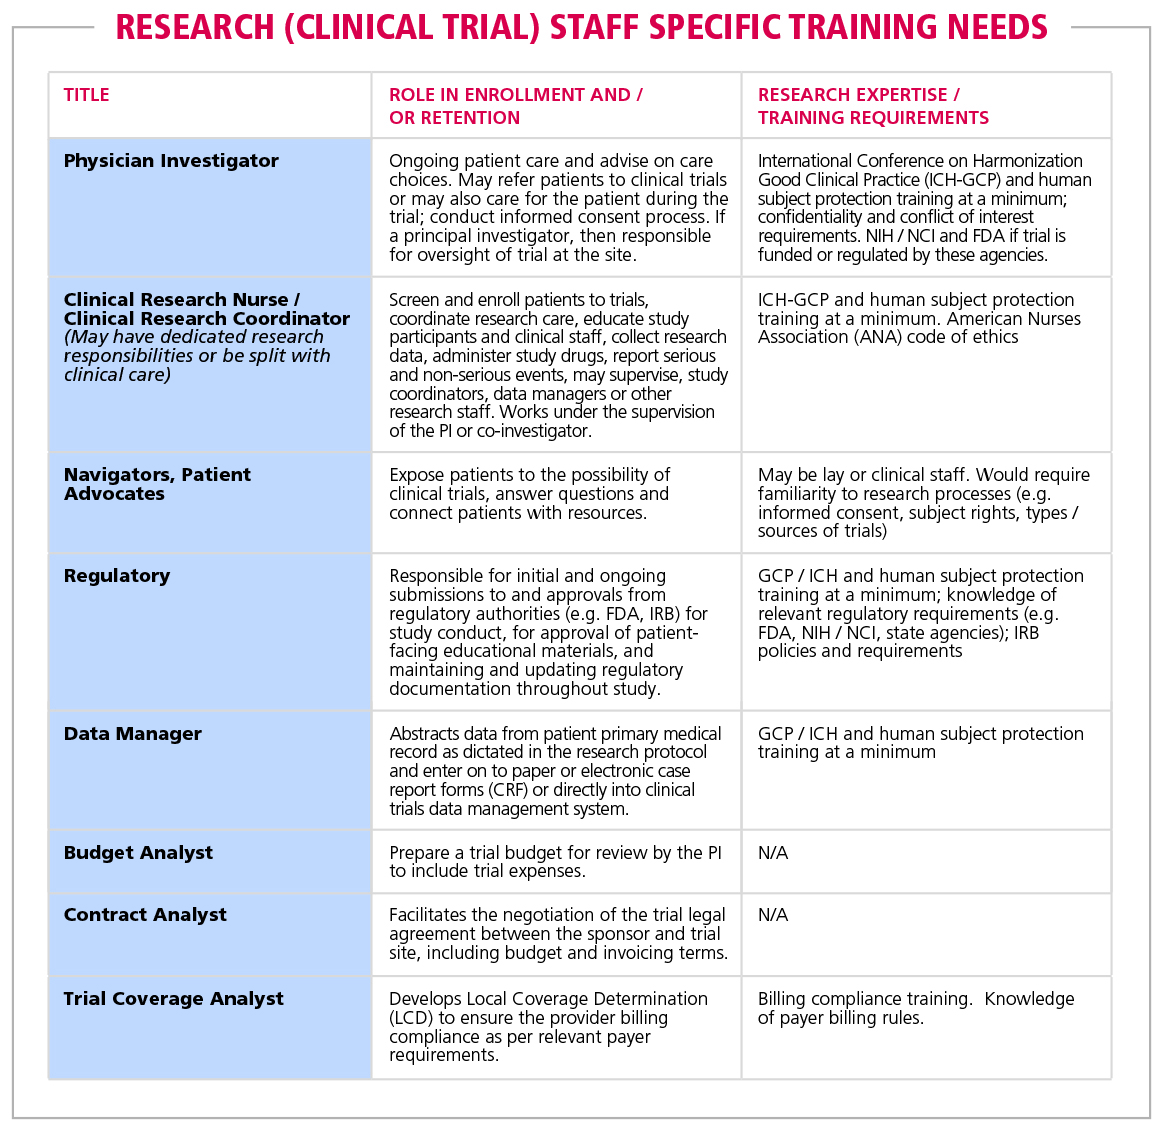 Table 2 Research Clinical Trial Staff Specific Training